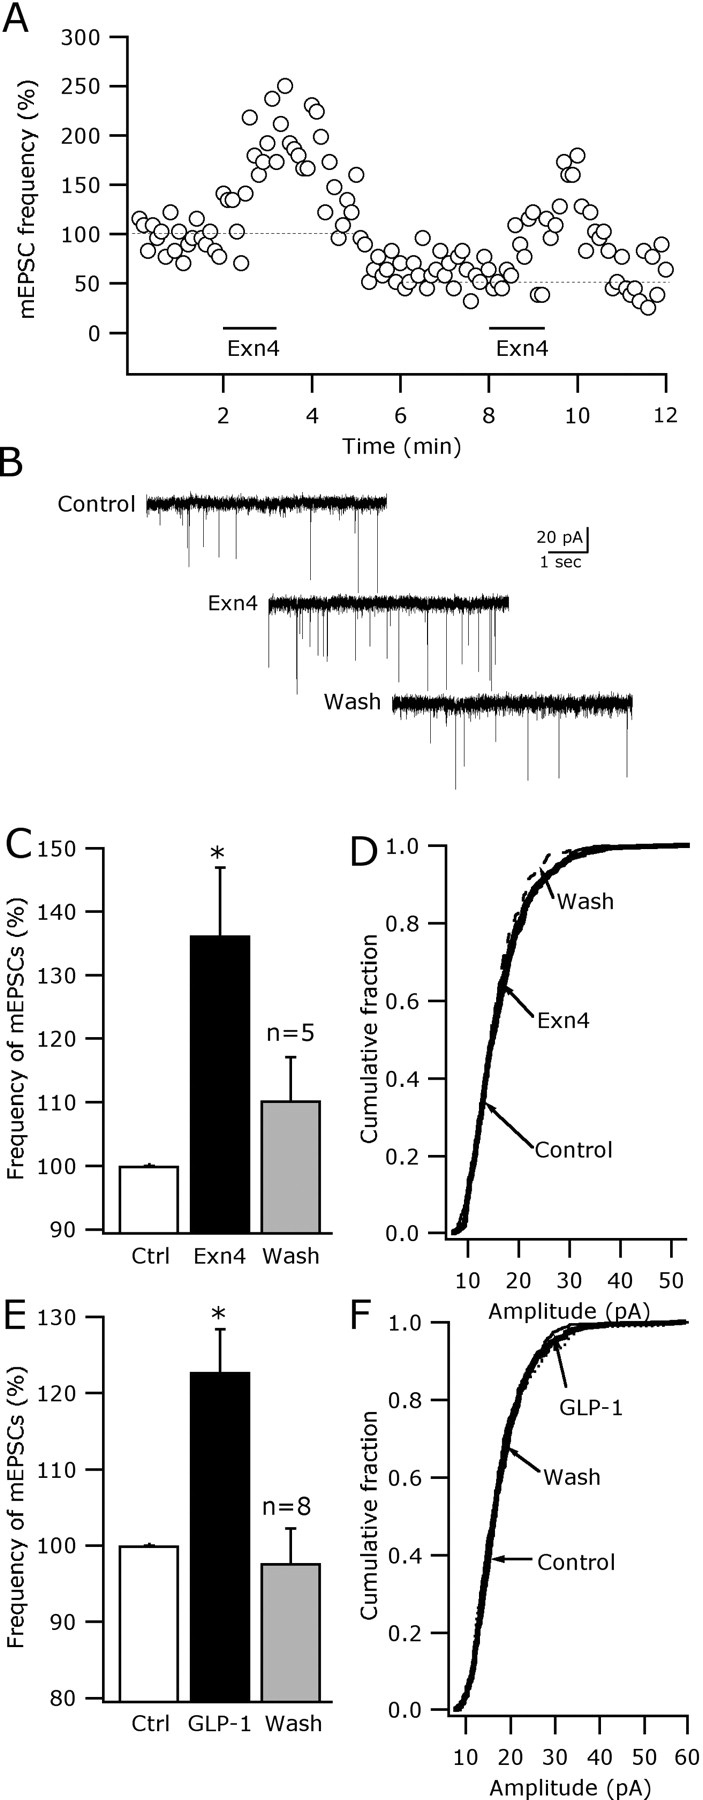 Glucagon Like Peptide 1 Excites Hypocretin Orexin Neurons By Direct Low Power Optical Interrupter Pdf Modulated Light Received Pl Tone Download Figure